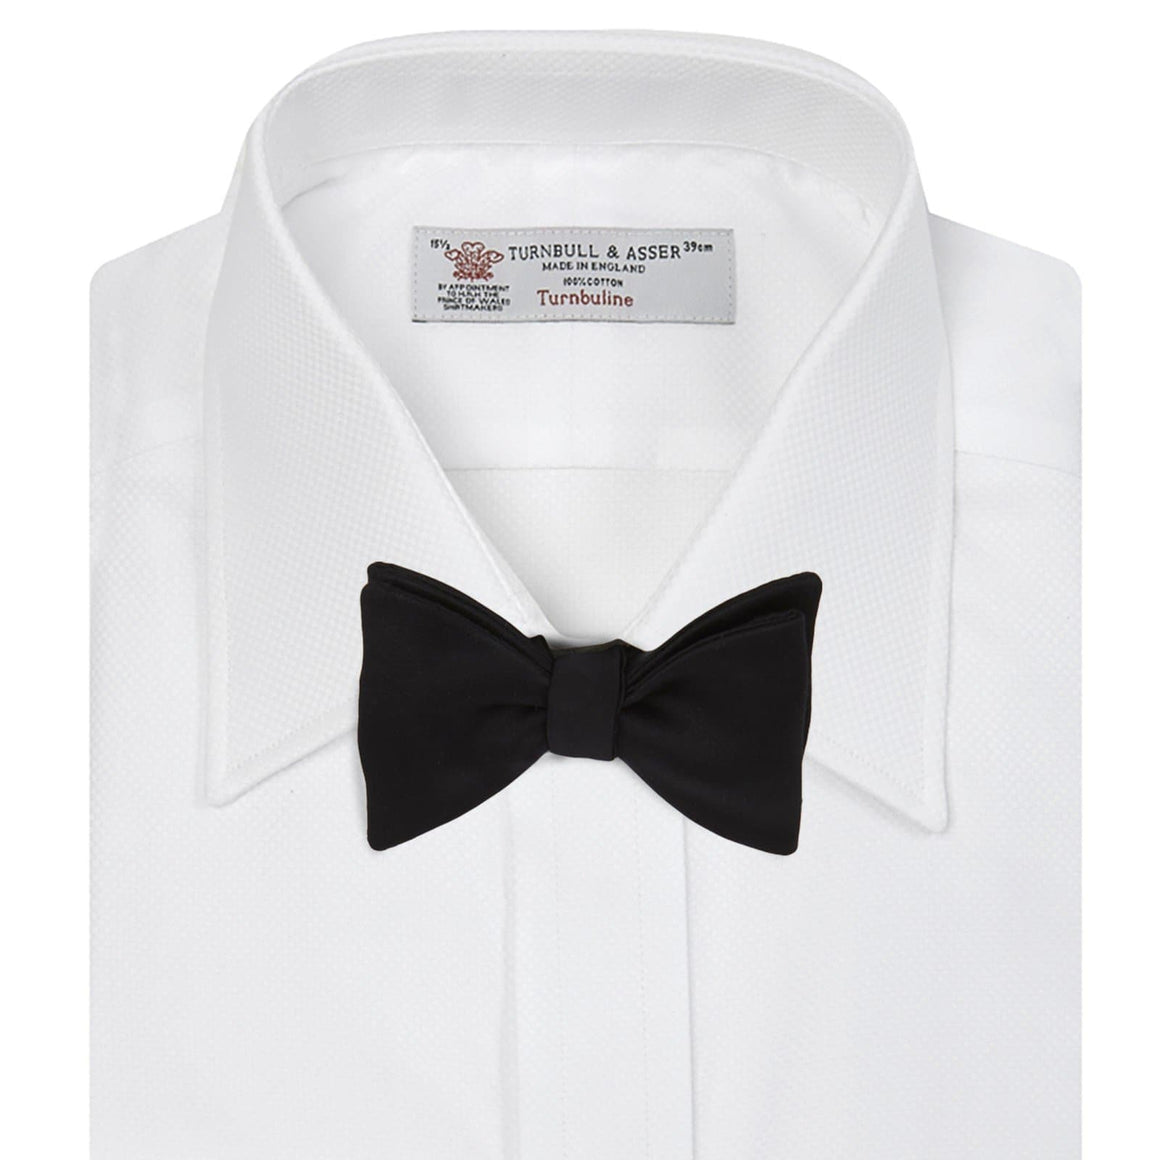 White Cotton Dress Shirt By Turnbull & Asser - Casino Royale Edition - 007STORE